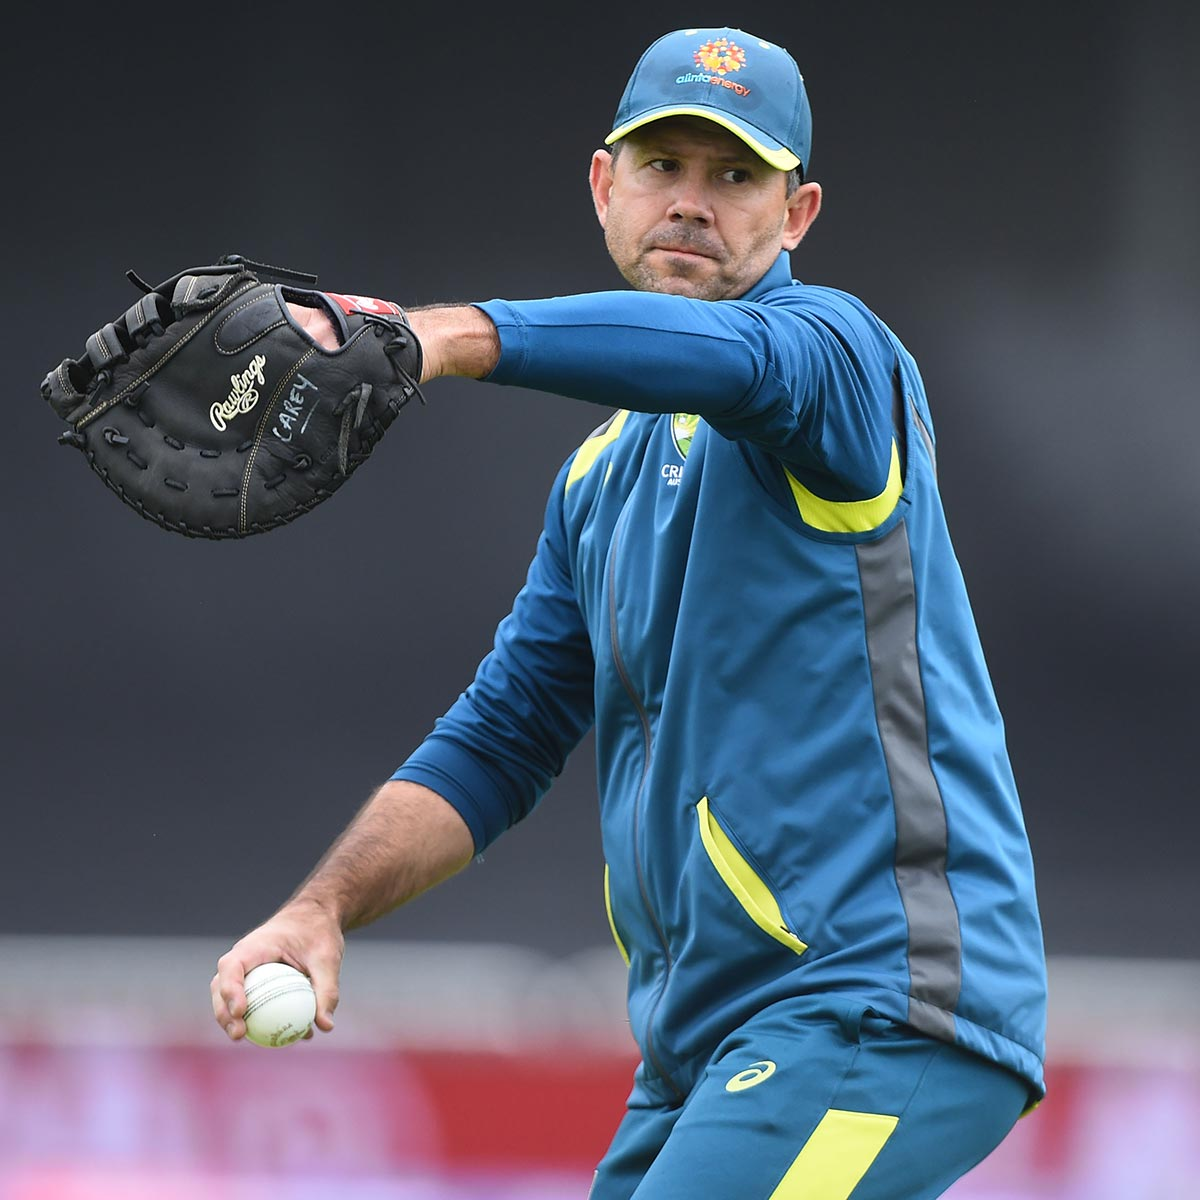 Ponting at training during the World Cup // Getty